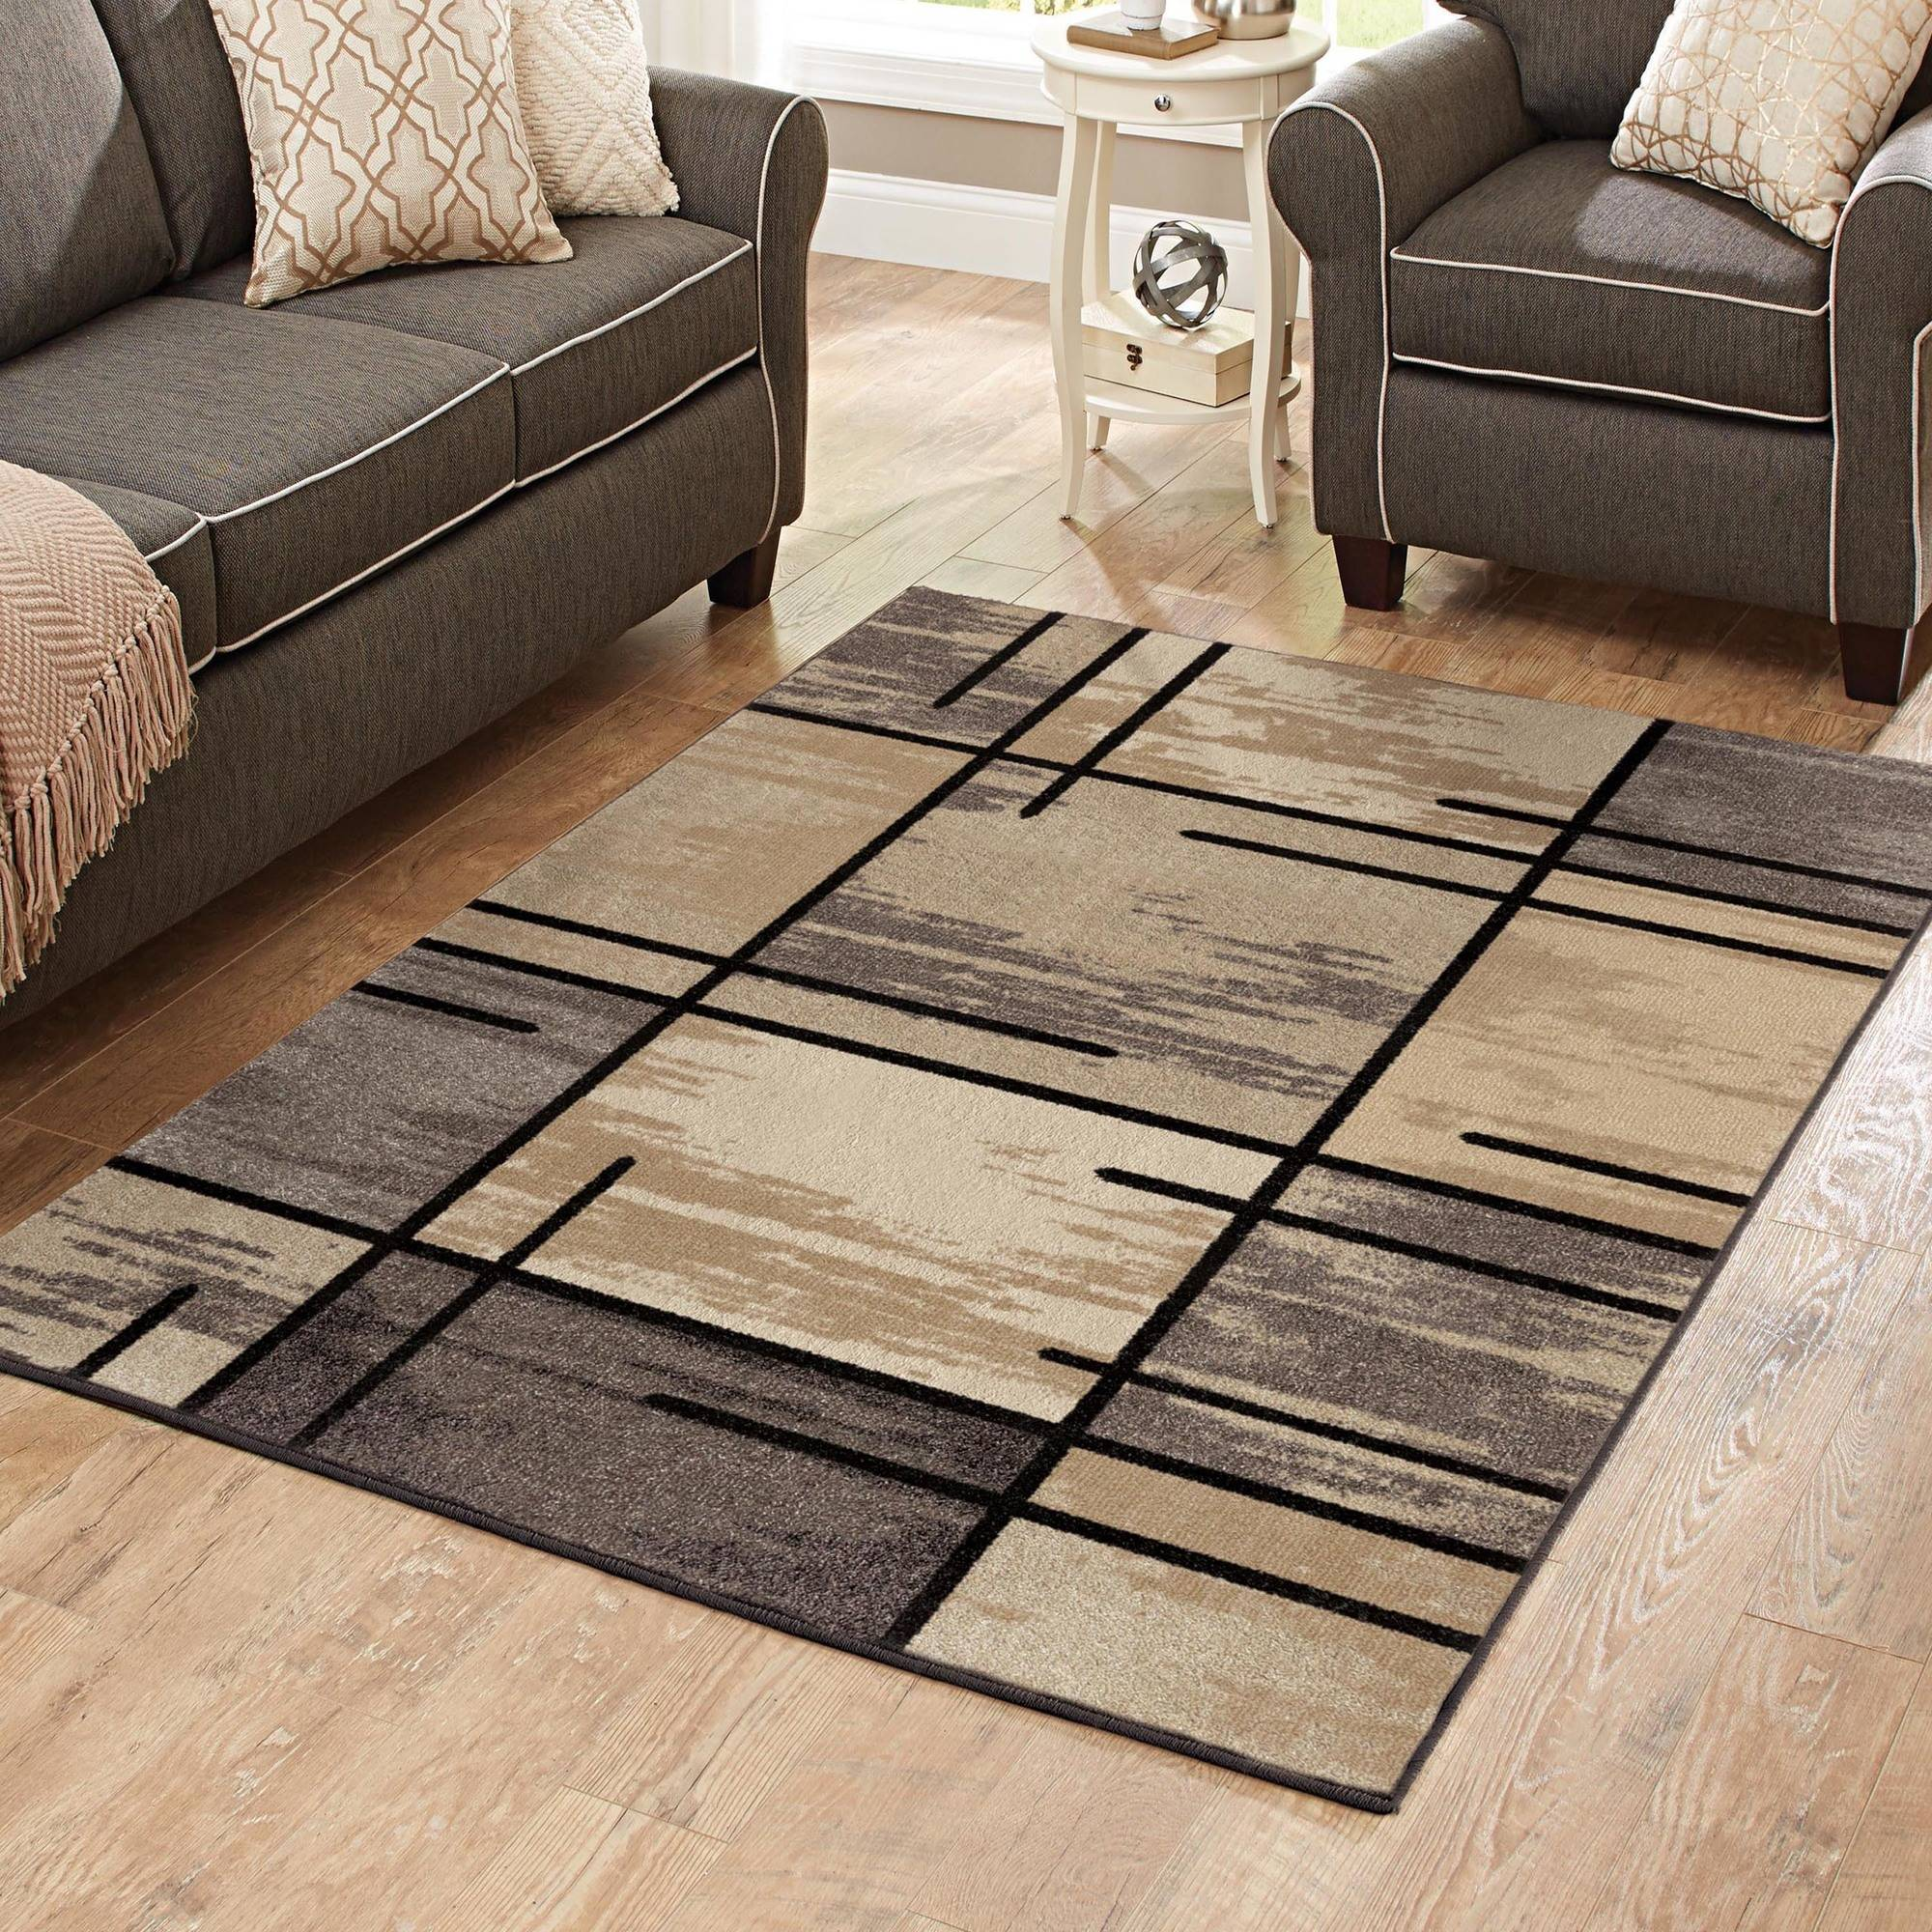 Better Homes Gardens Rugs Under 120 Walmart Com